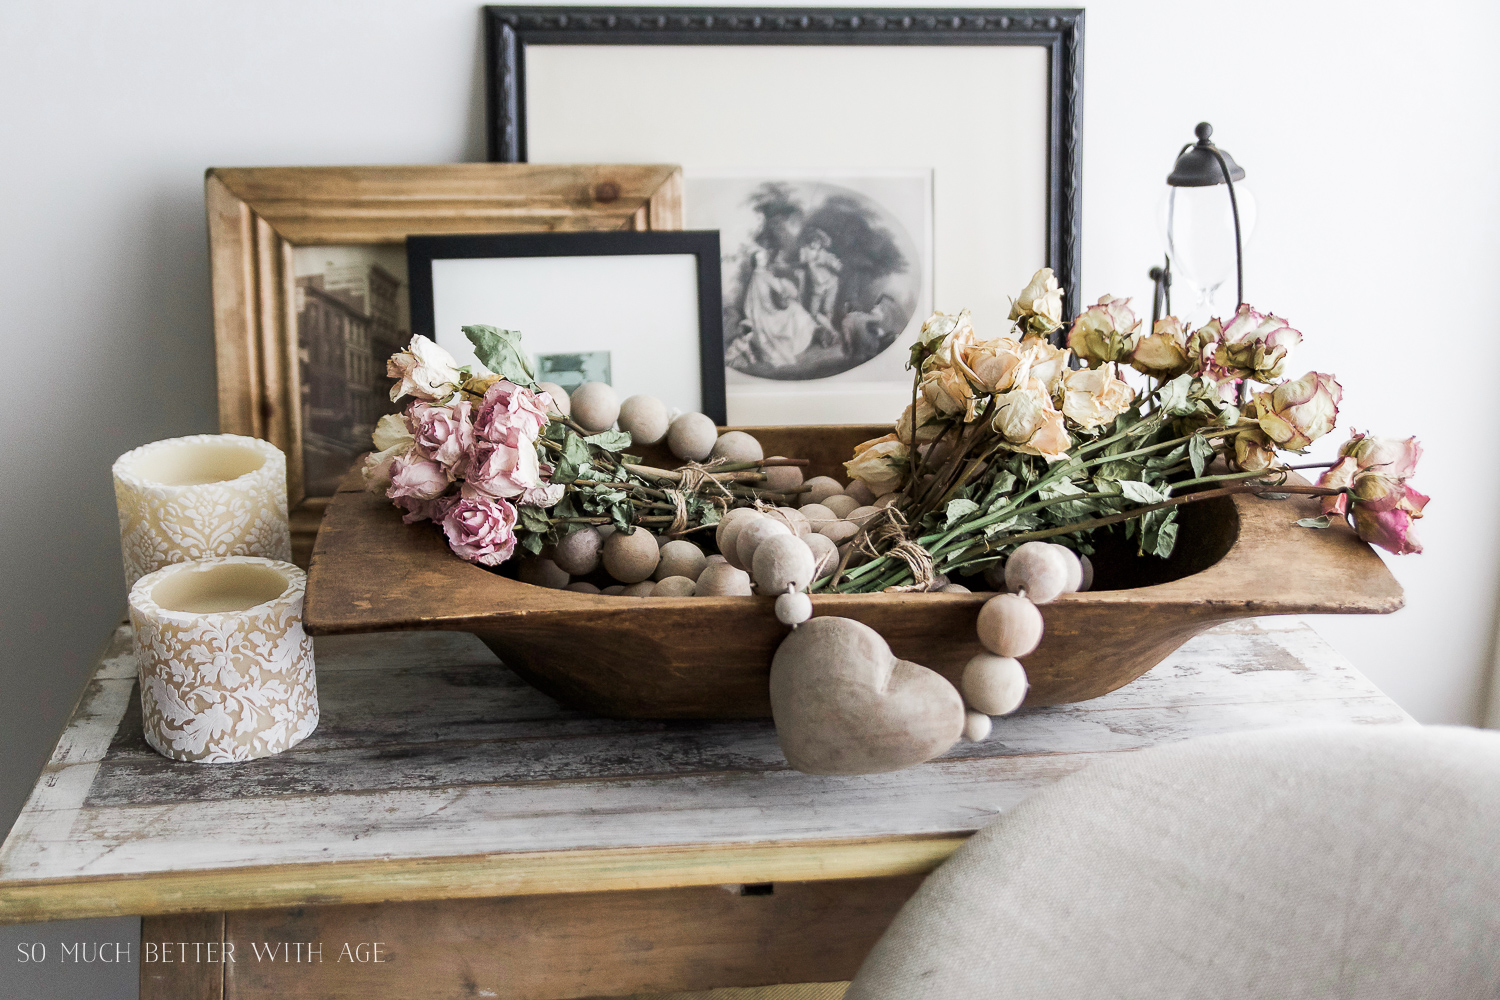 Black & white engravings, How to Pick Art with a French Vintage Vibe / dried flowers - So Much Better With Age